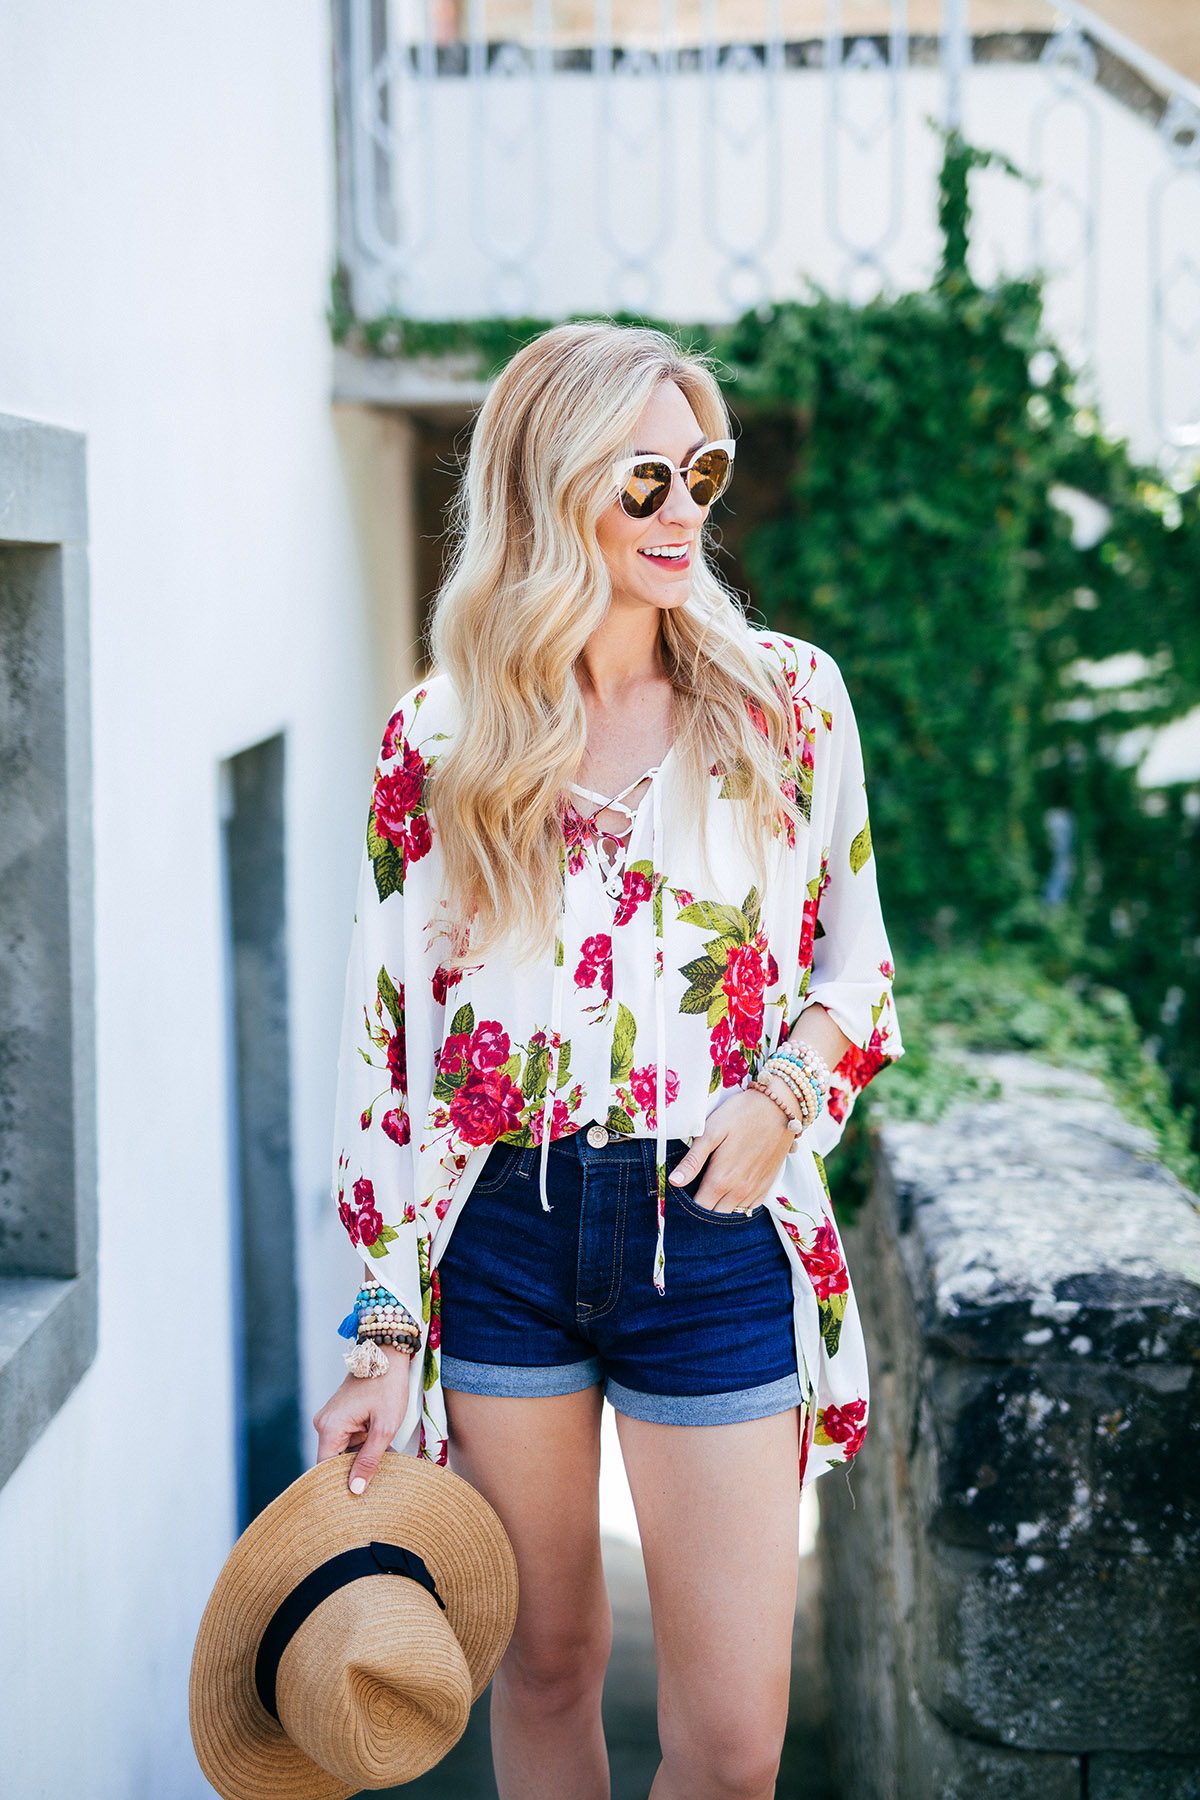 Summer Outfit Picks Under $100